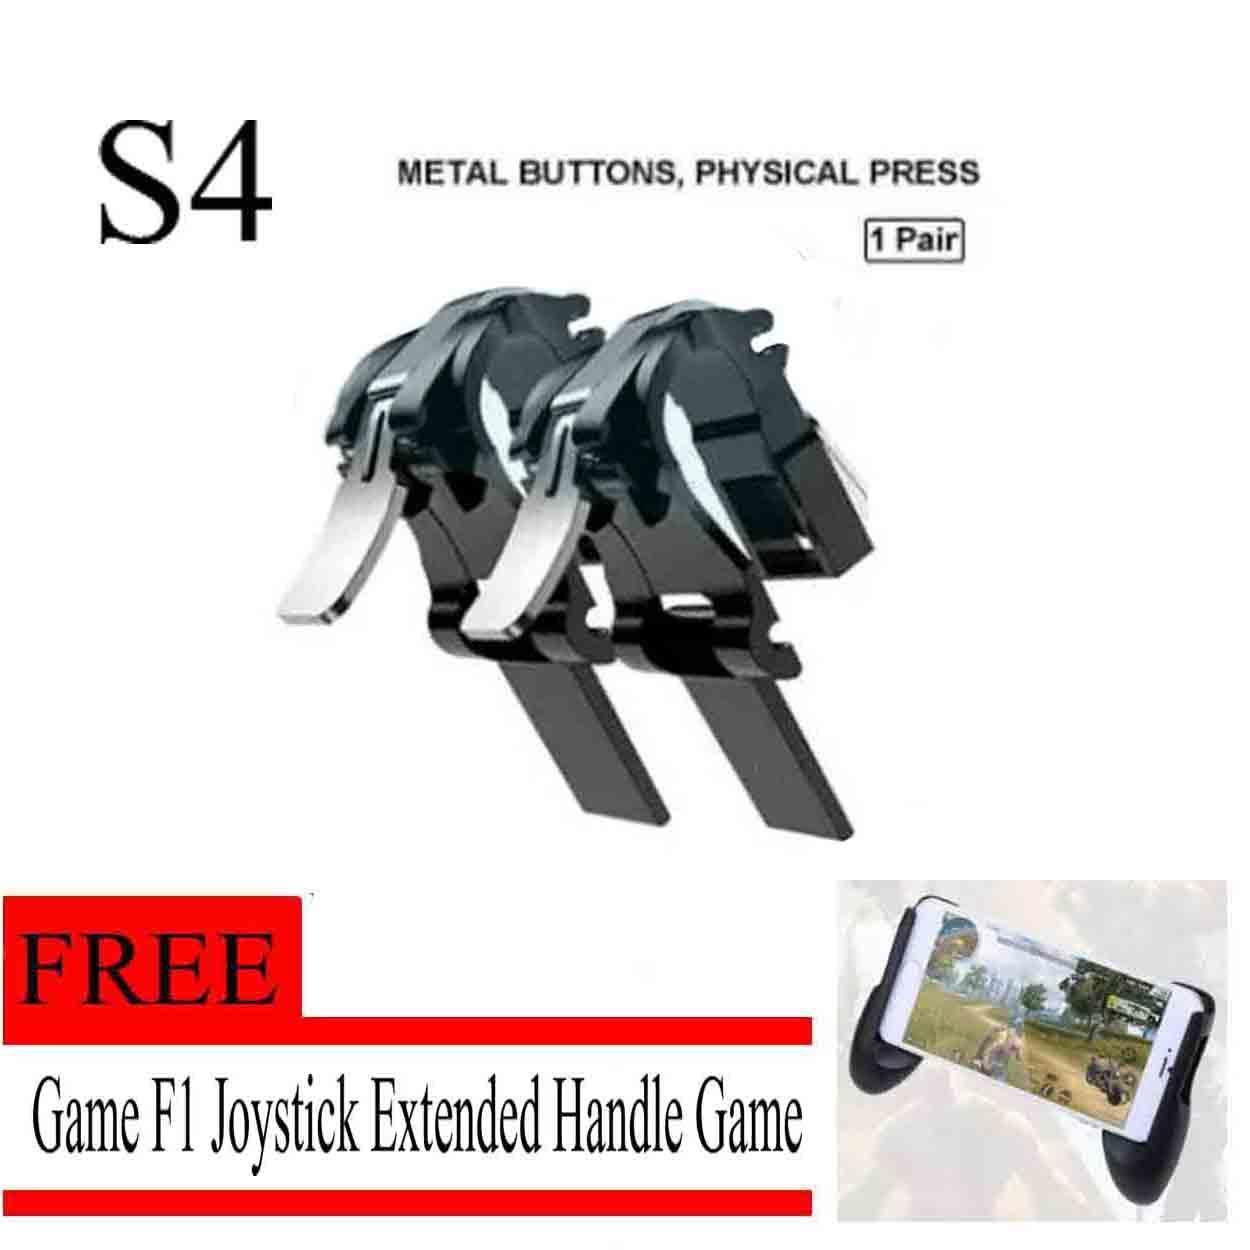 Ps Controller For Sale Dual Shock Prices Brands L1 R1 Sharp Shooter Pubg Mobile Joystick Rule Of Survival Versi 3 S4 L1r1 Sharpshooter Trigger Buttons Sensitive Shoot Physical Game Aim